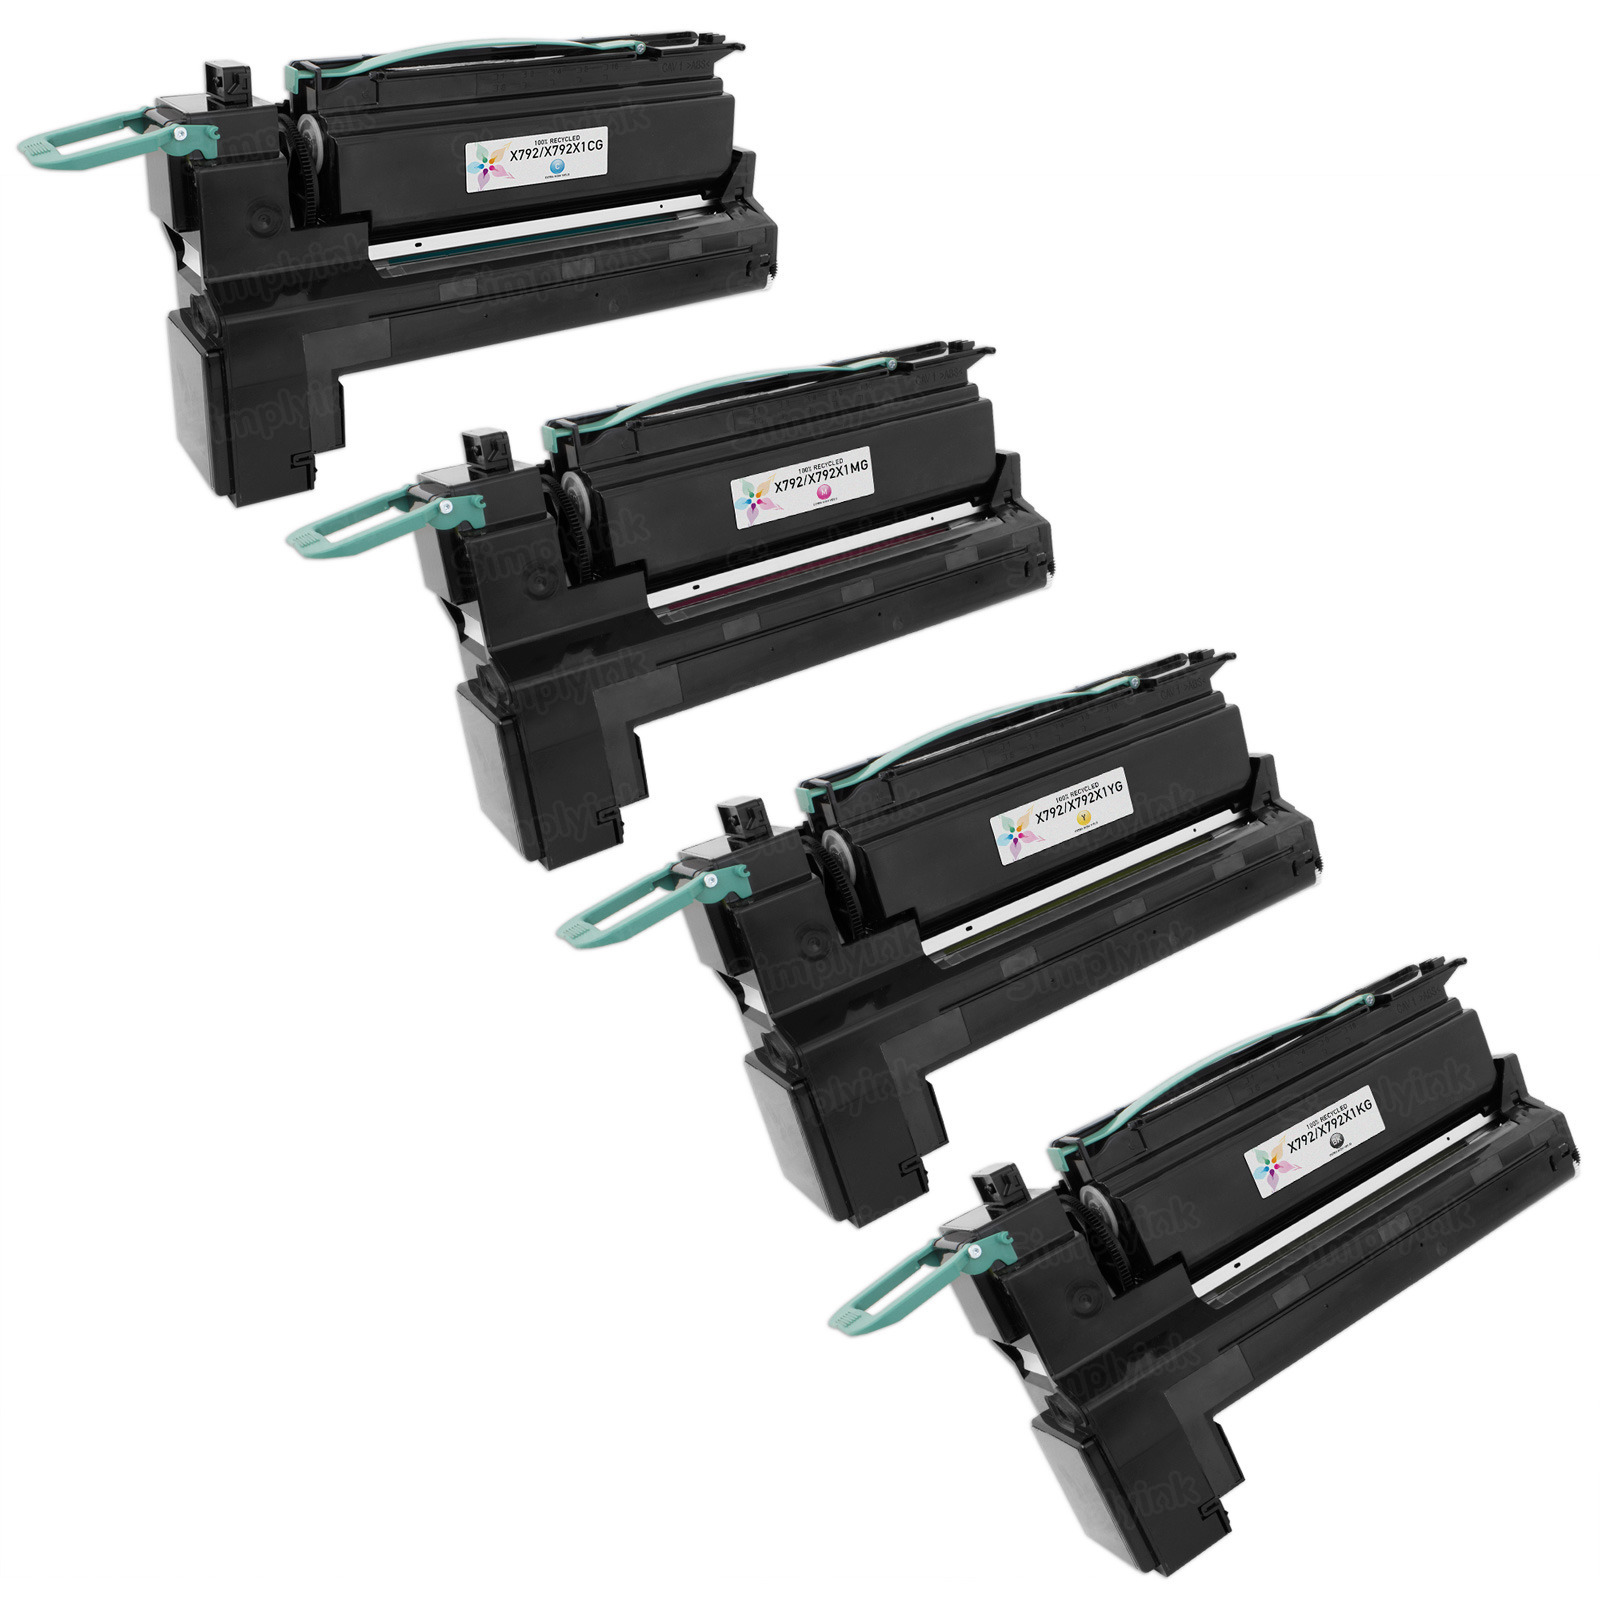 Lexmark Remanufactured EHY (Bk, C, M, Y) Toner Set, X792